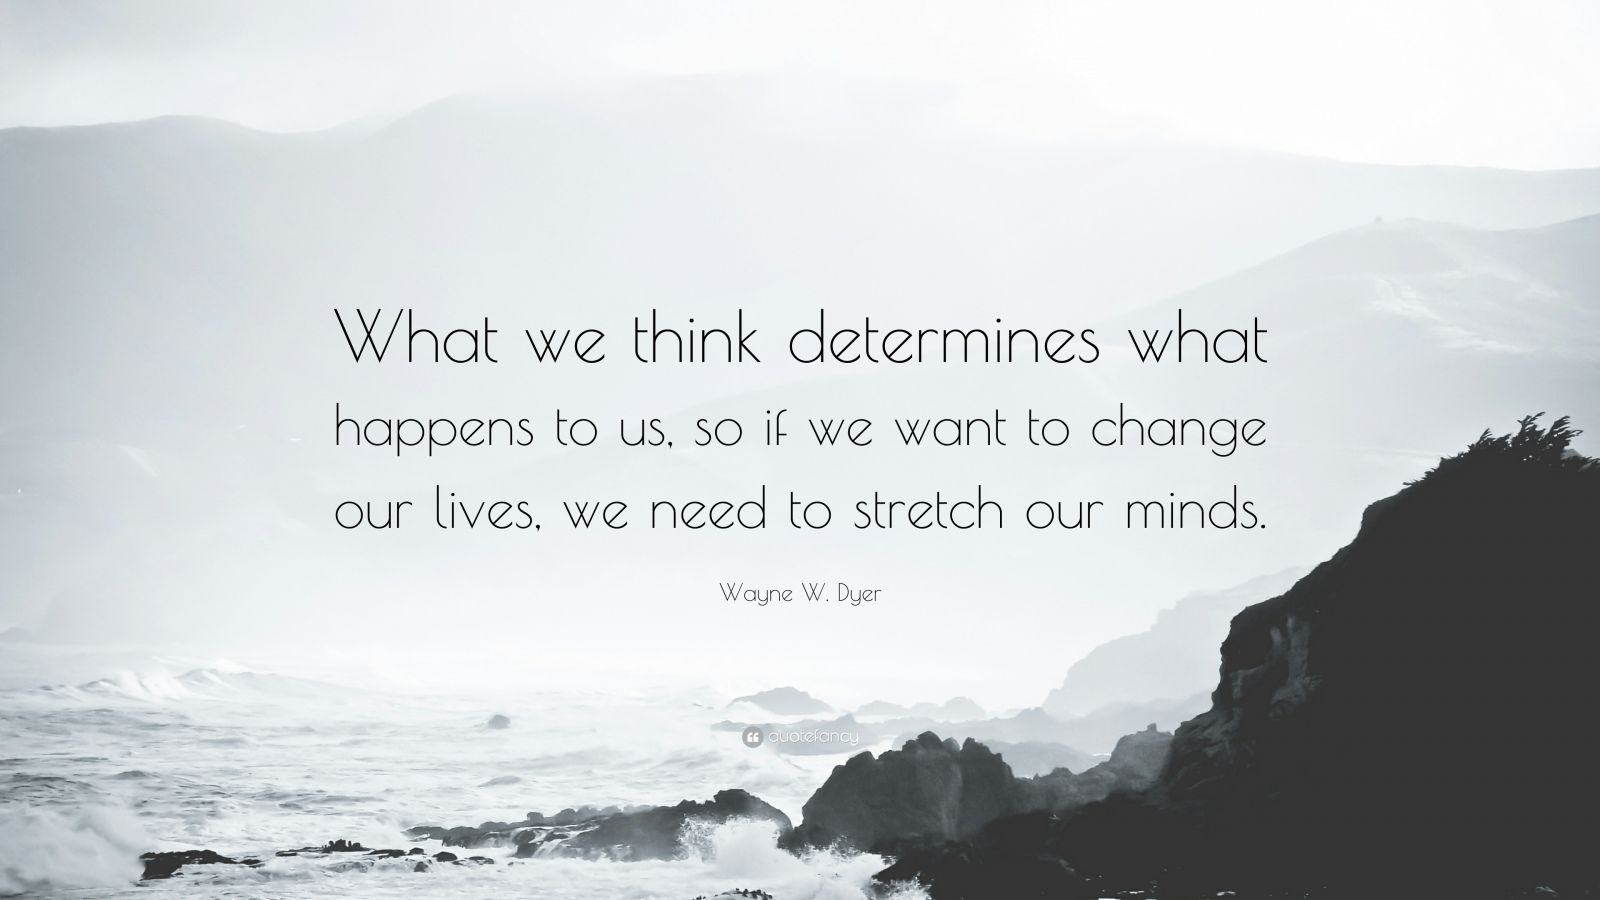 """Wayne W. Dyer Quote: """"What we think determines what happens to us, so if we want to change our lives, we need to stretch our minds."""""""